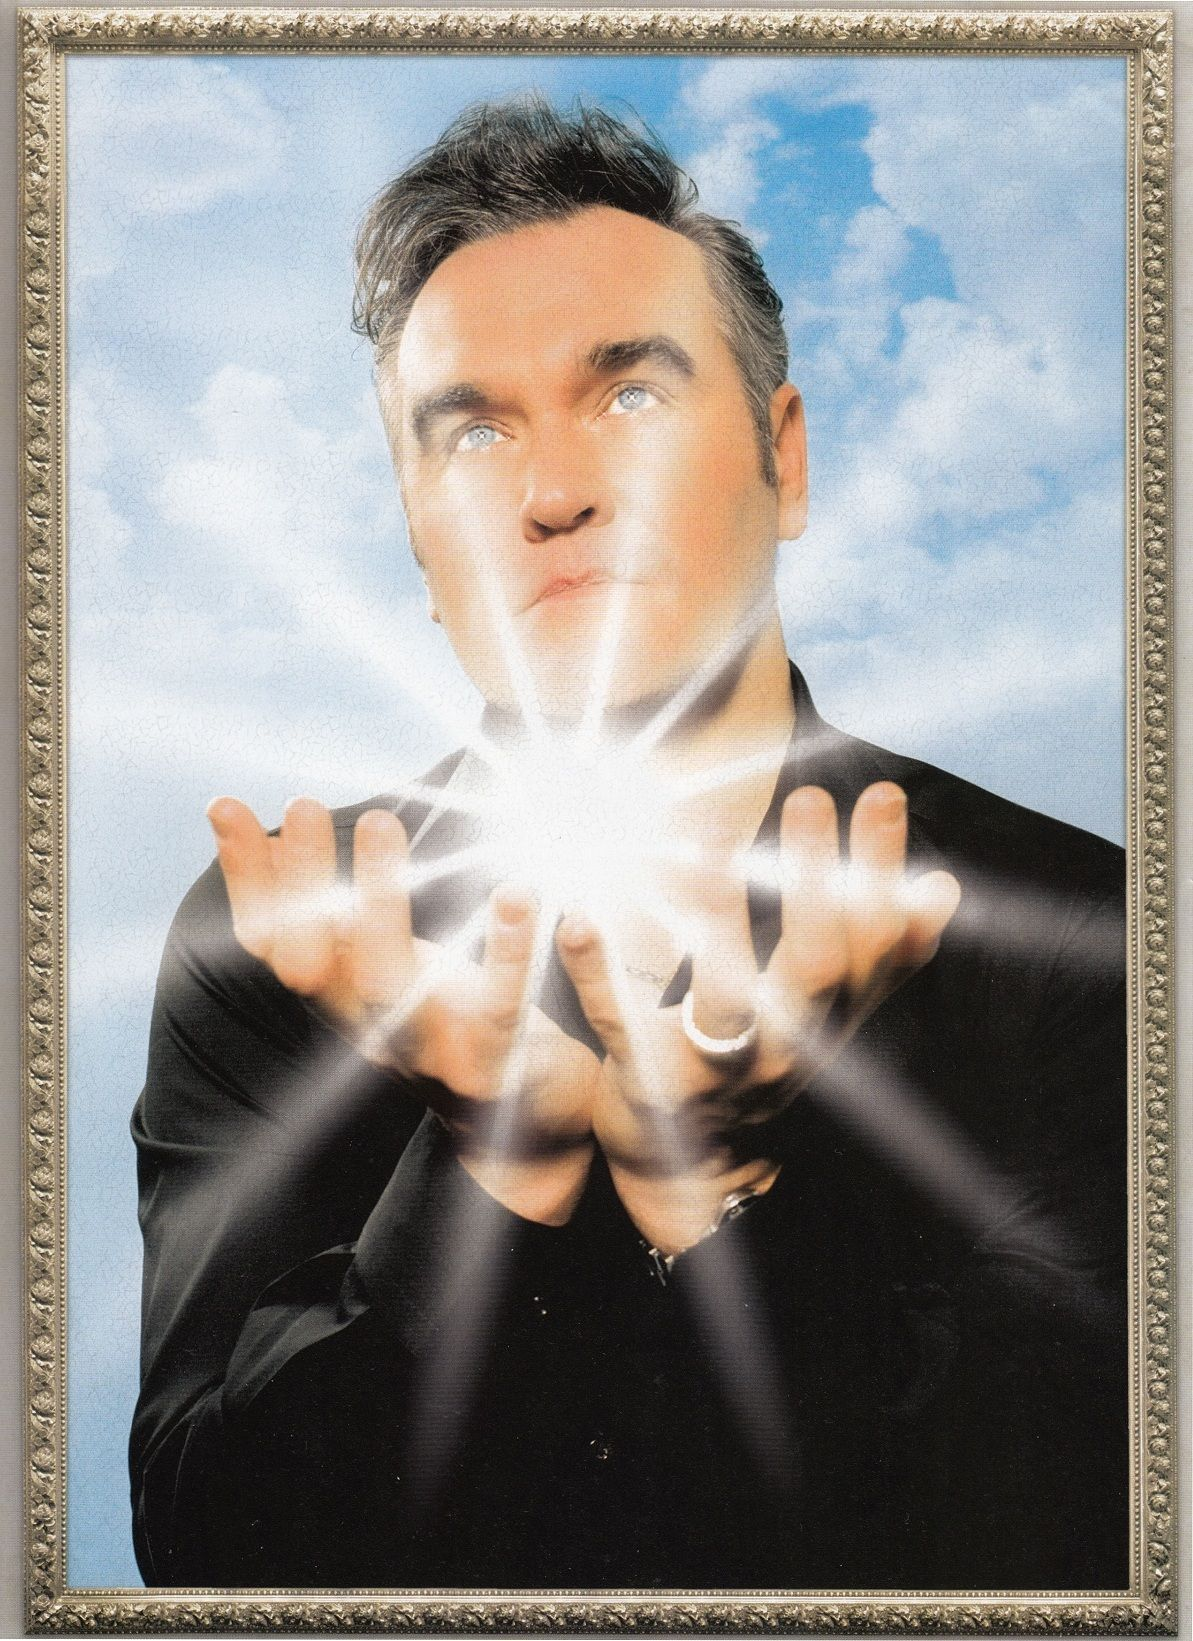 Morrissey Morrissey Movie Posters Will Smith